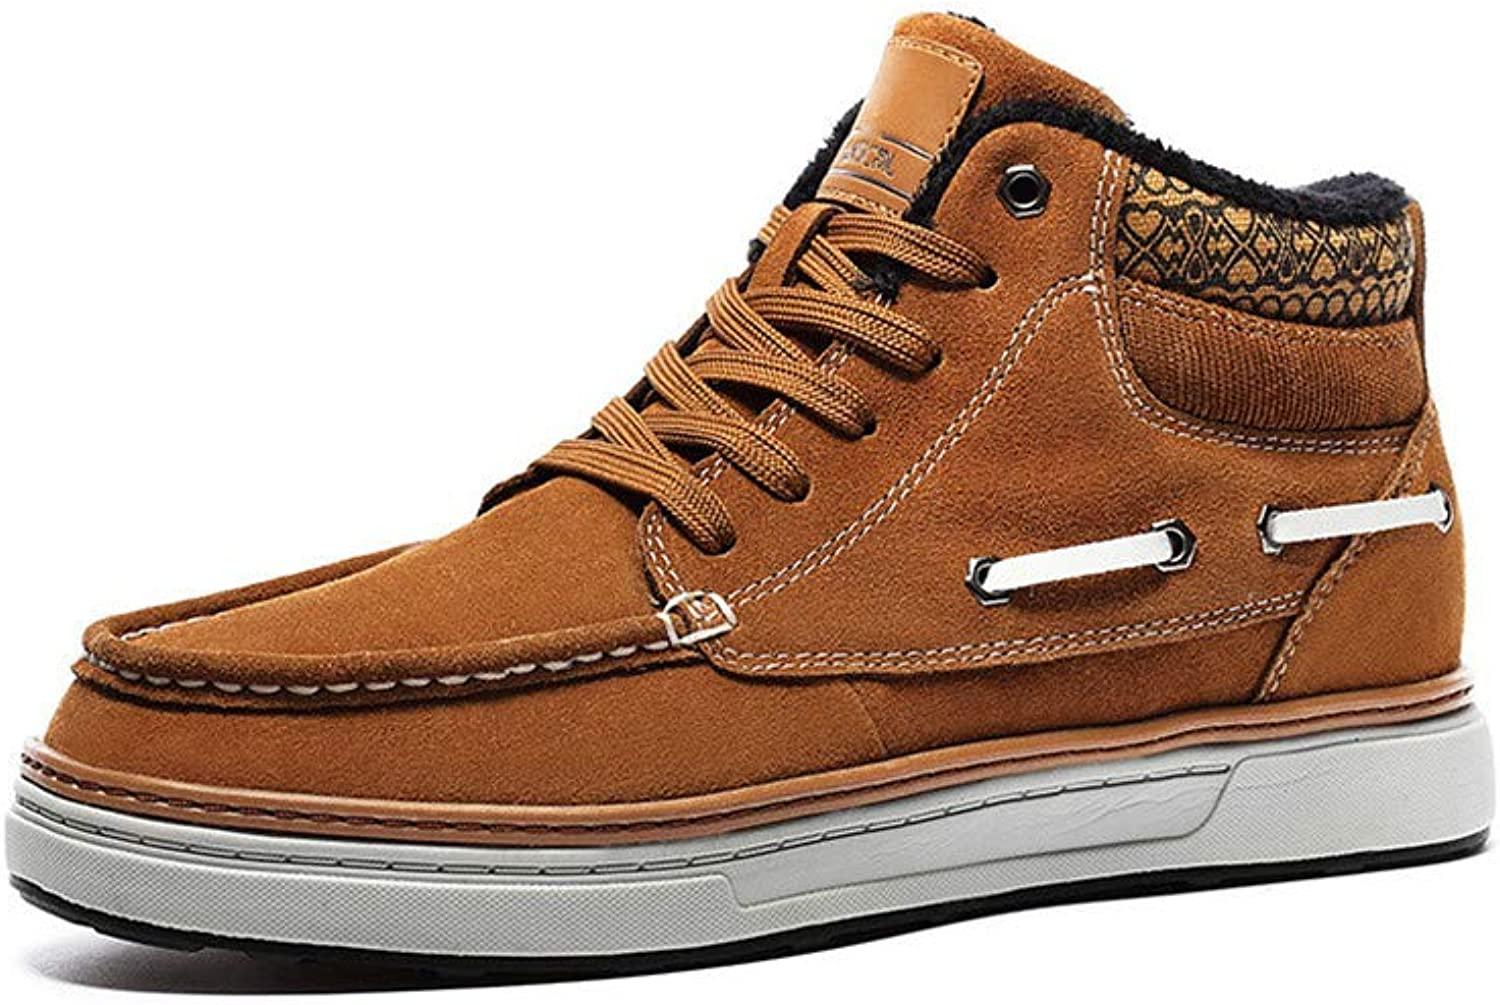 CWXDIAN Men's boots, warm, casual, high-top, men's shoes, snow boots, coffee color, 40